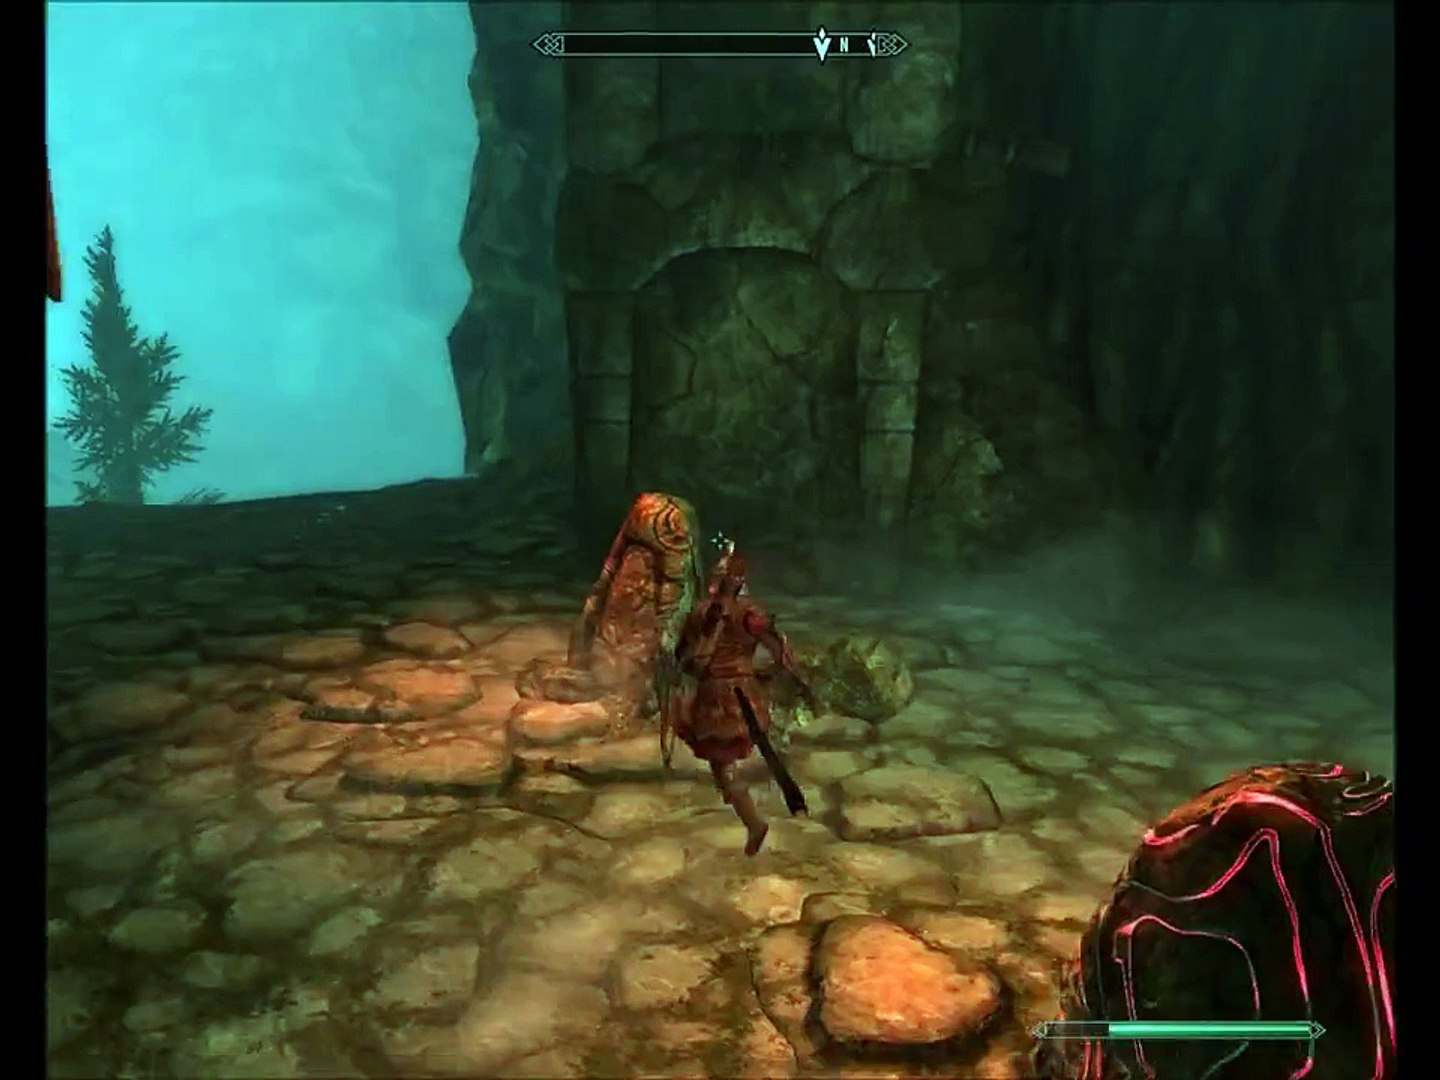 Skyrim Retrieve Horn Of Jurgen Windcaller Help Red Stone Puzzle Tips Video Dailymotion